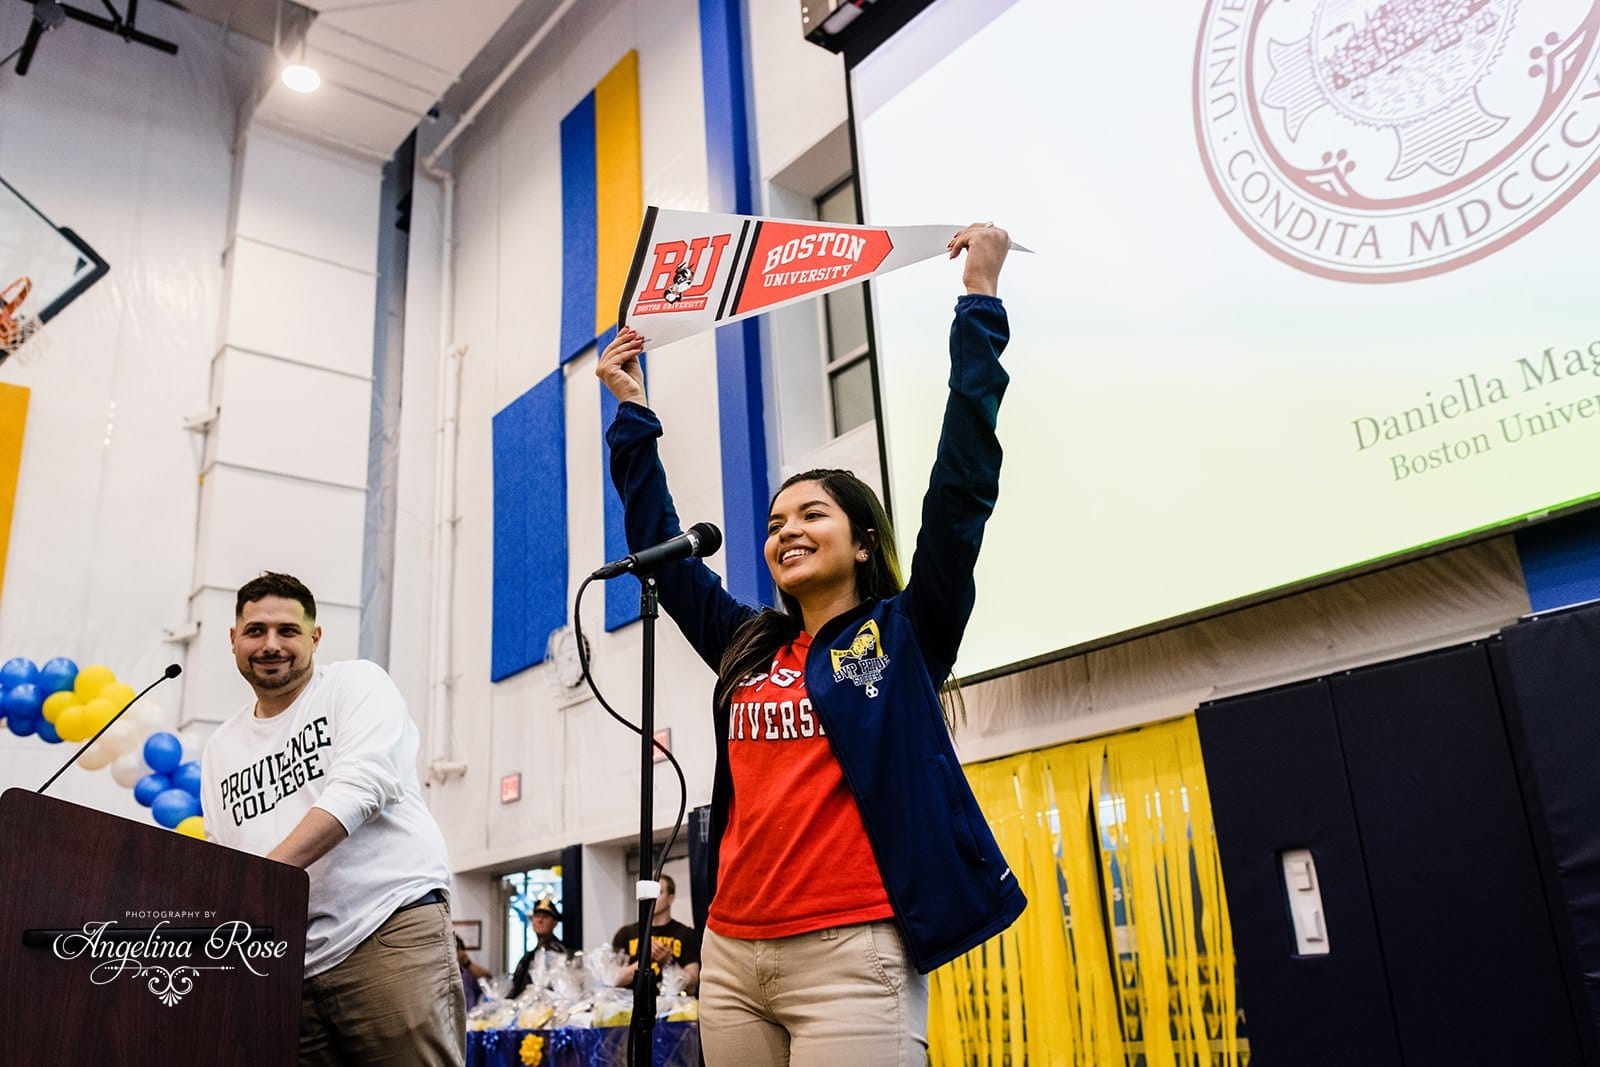 Scholar holding up Boston University pennant